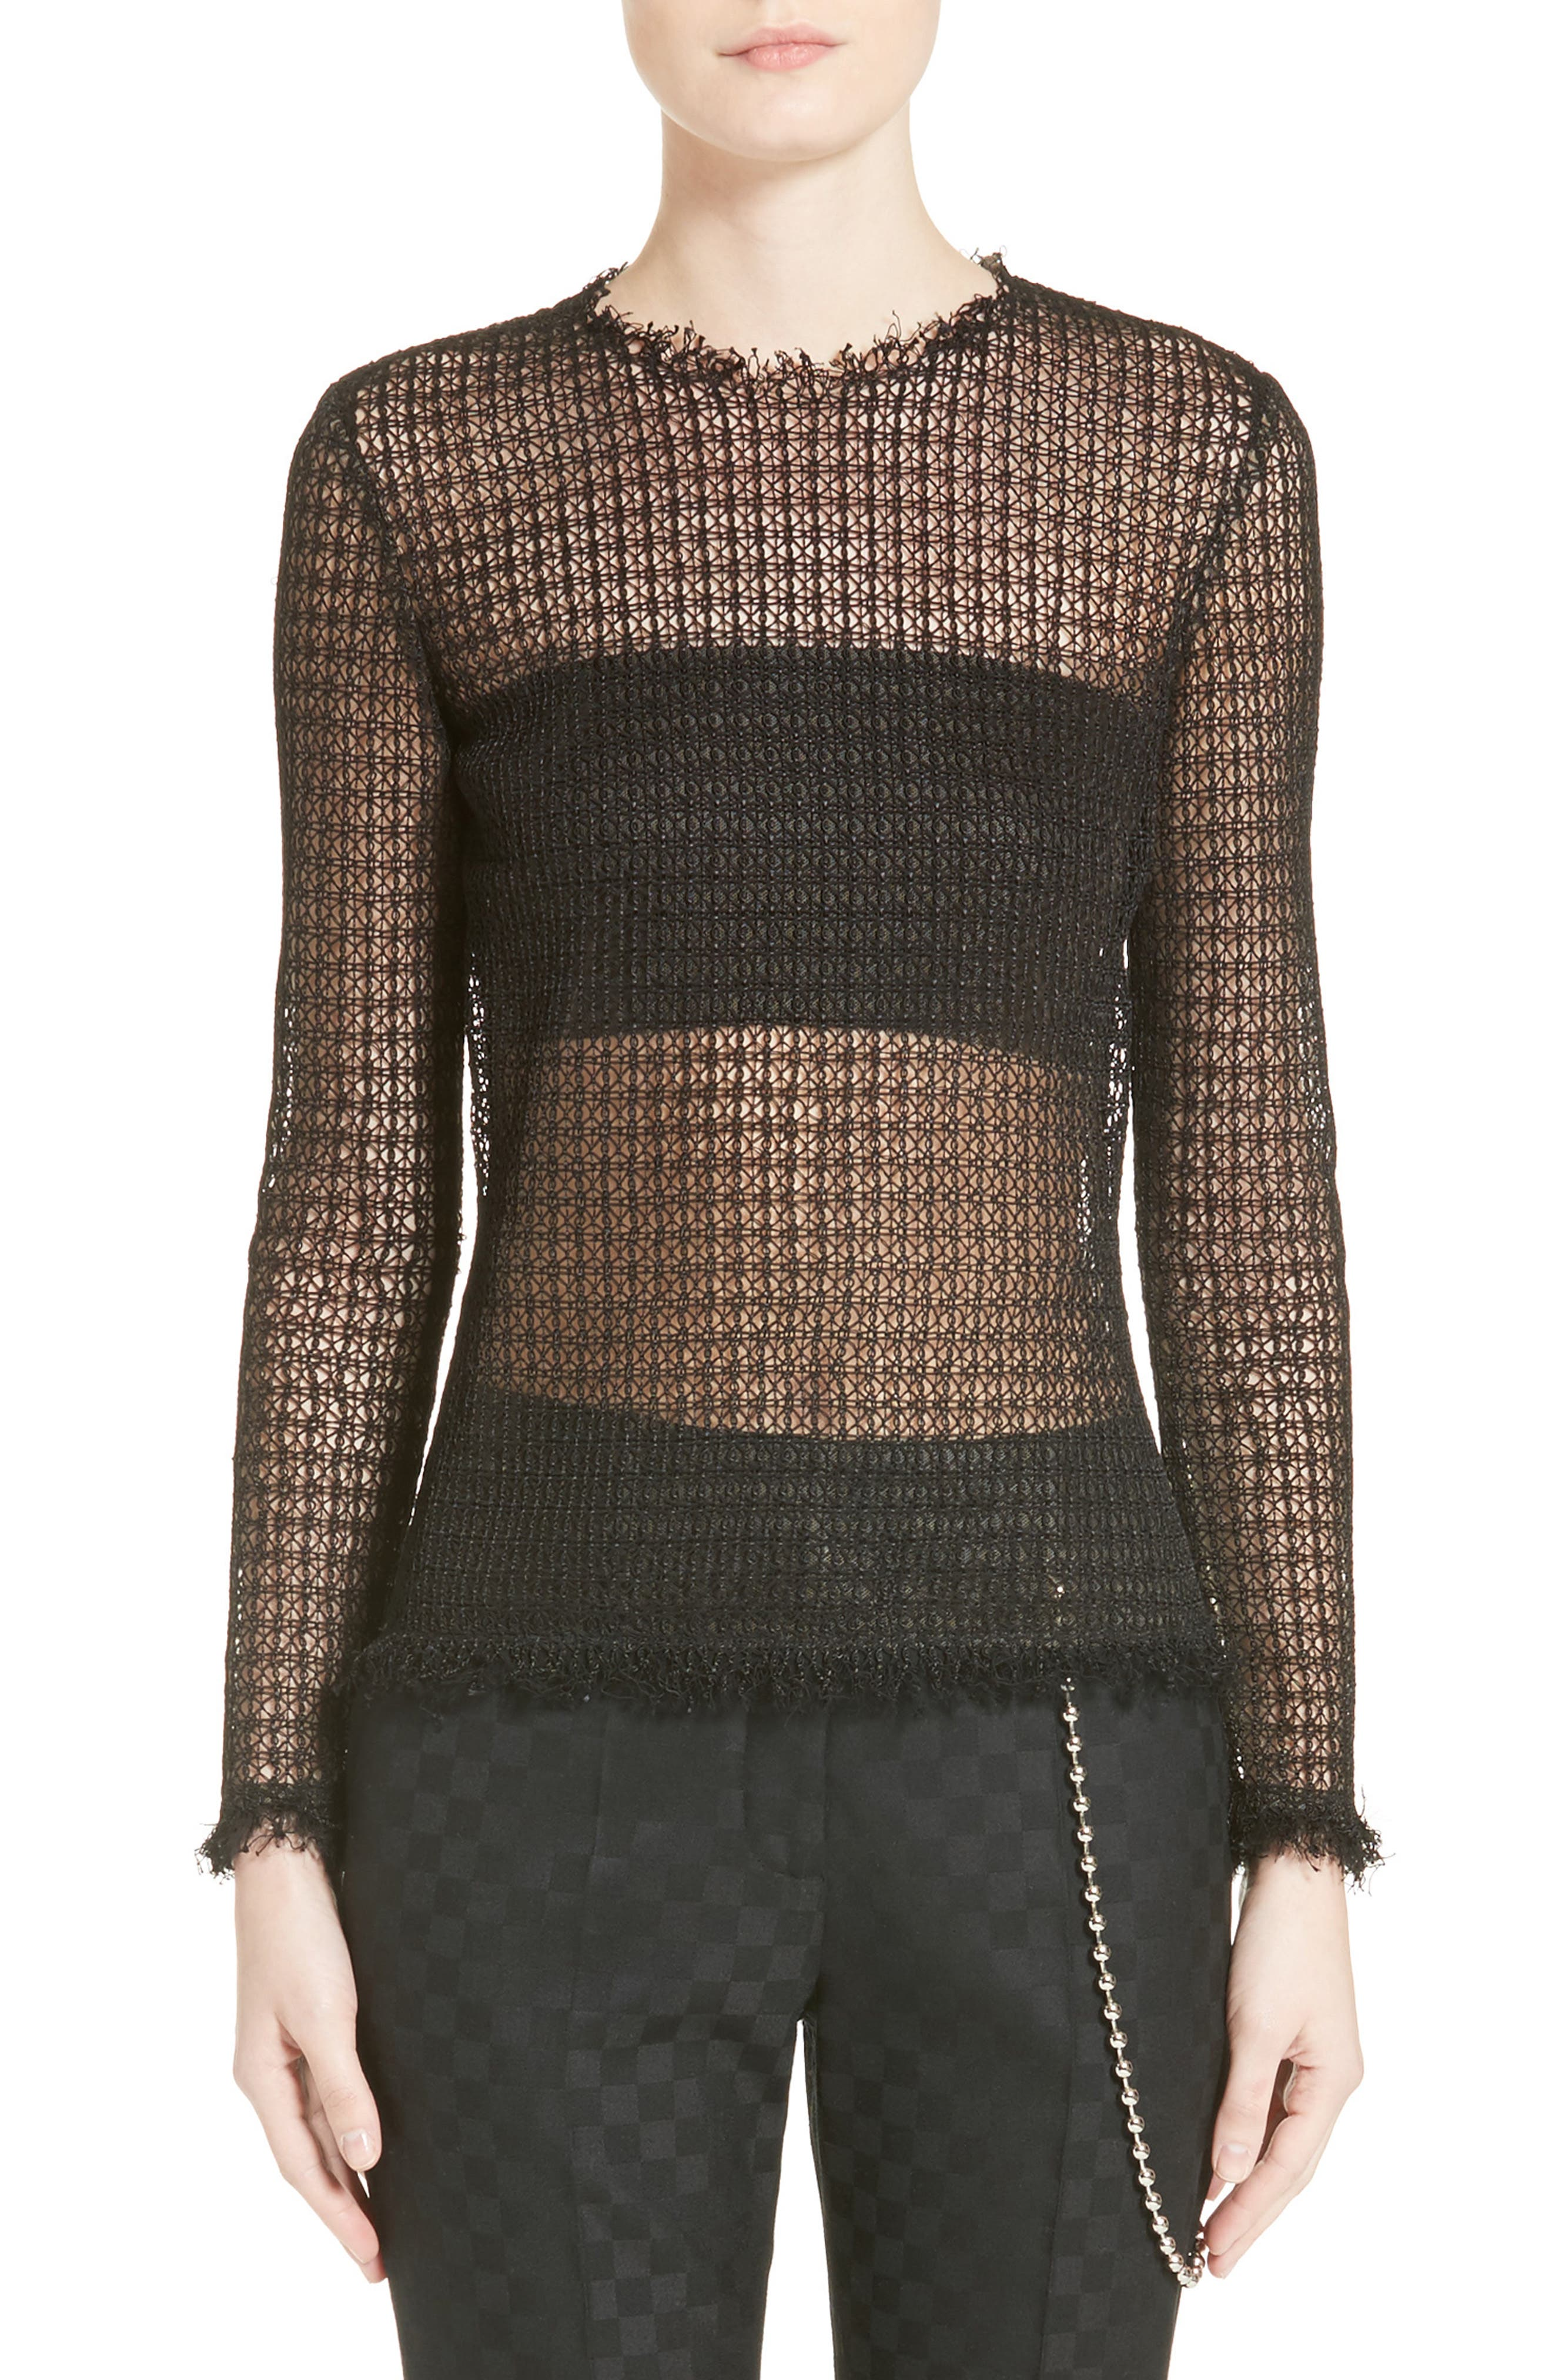 Alexander Wang Geometric Lace Top